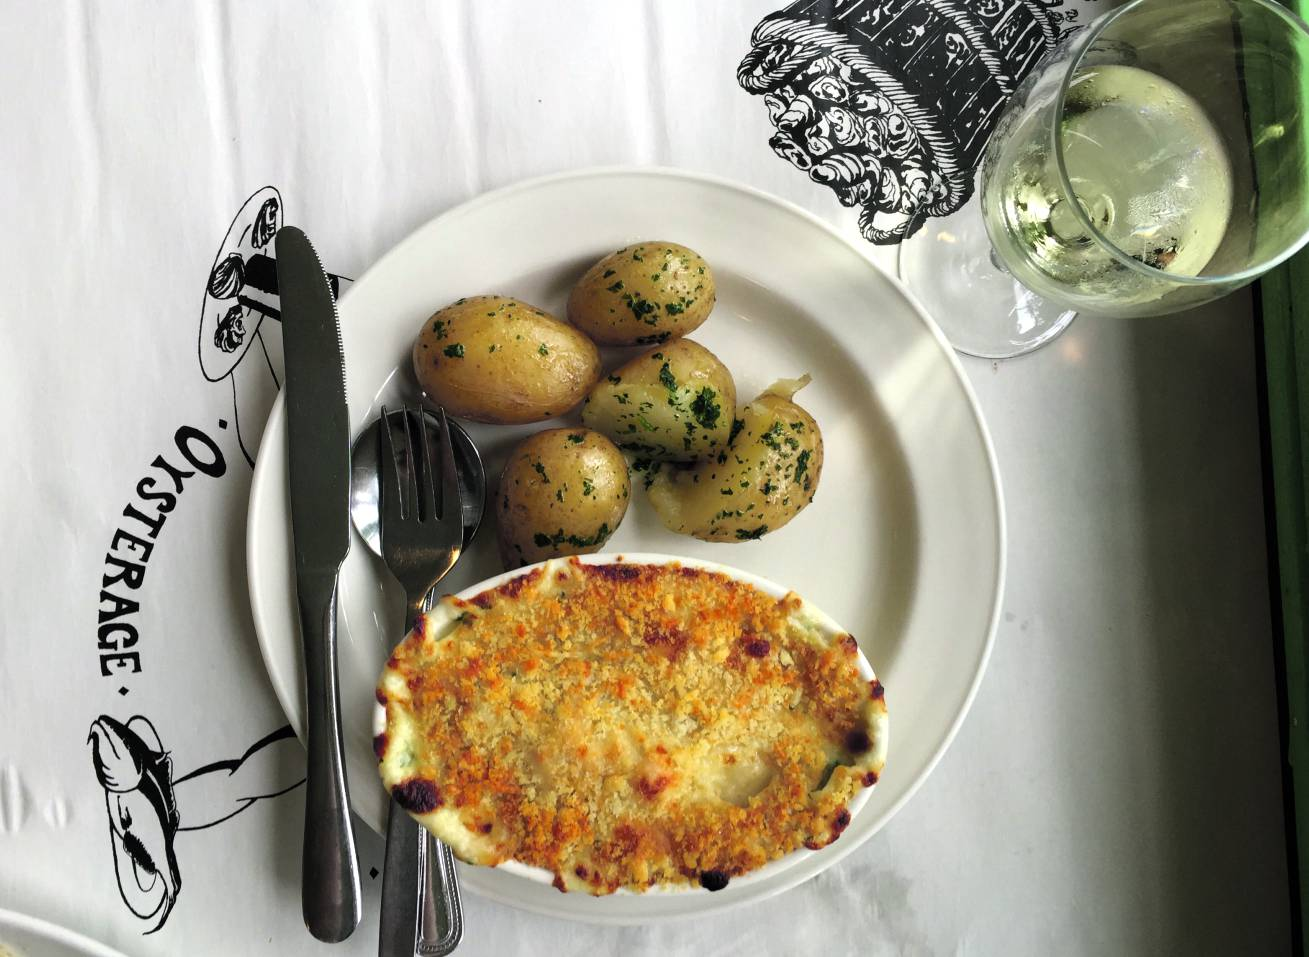 Fish pie at the Oysterage. Photo: SE